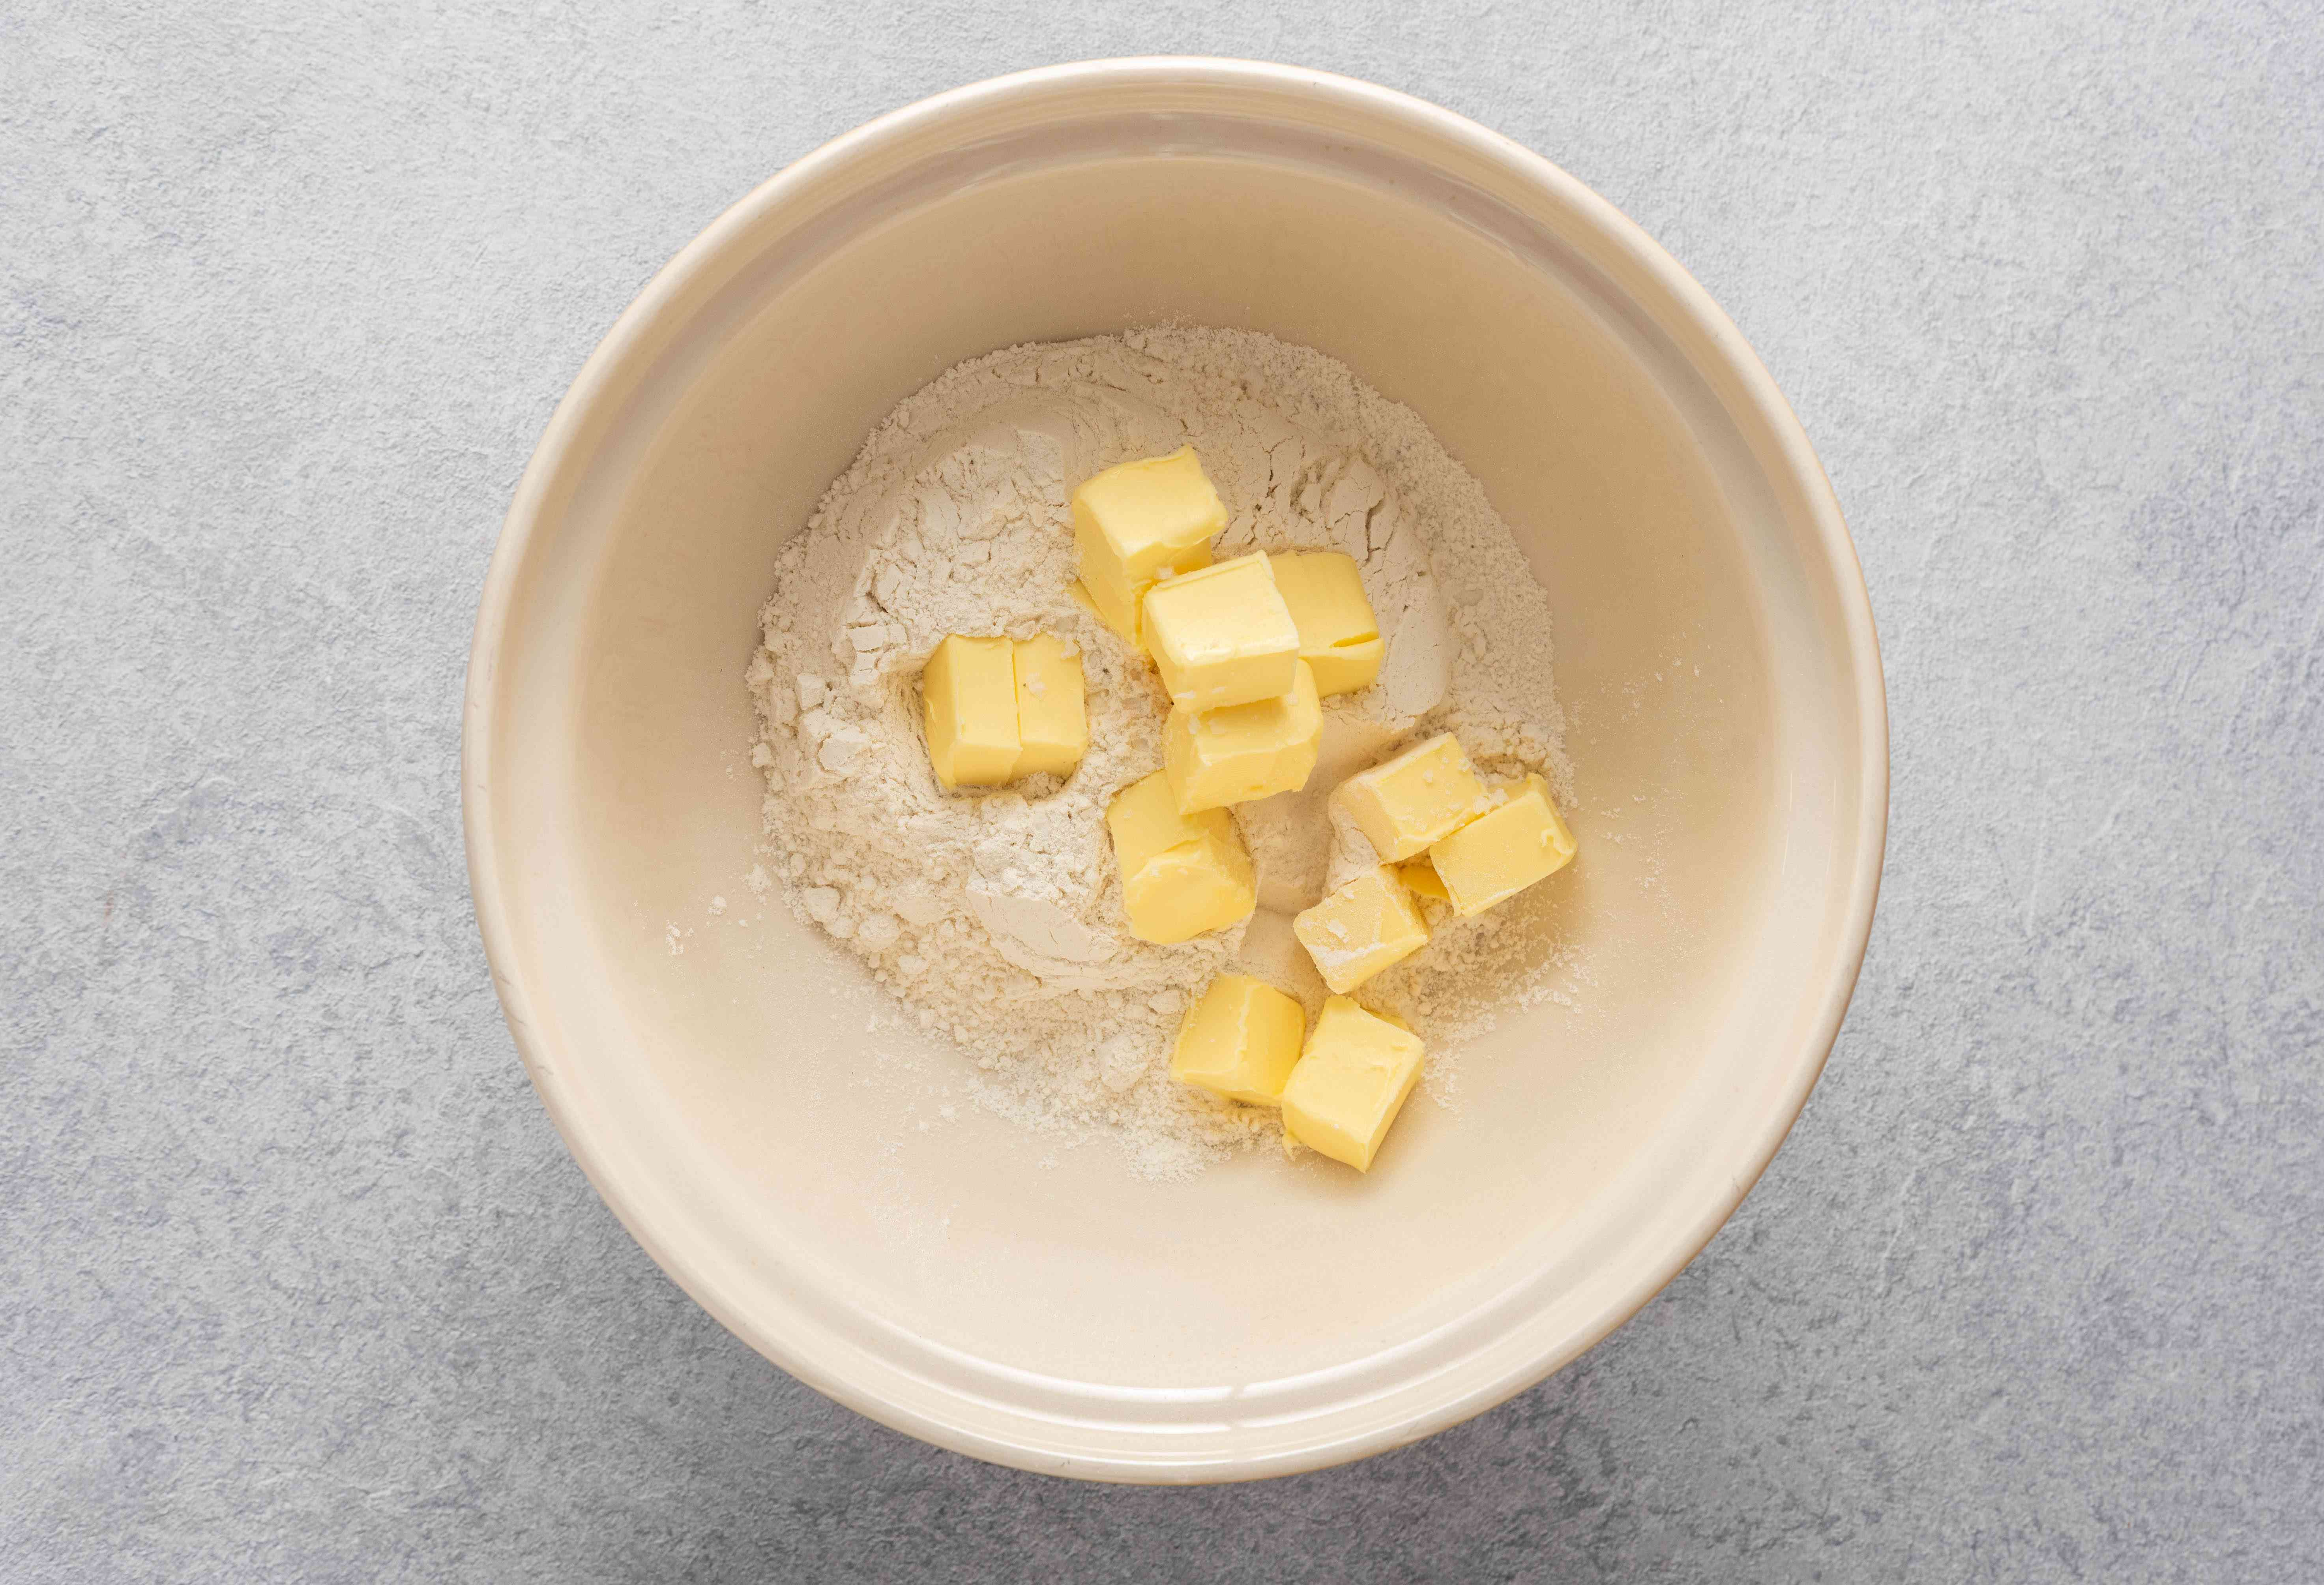 salt, flour and butter in a bowl